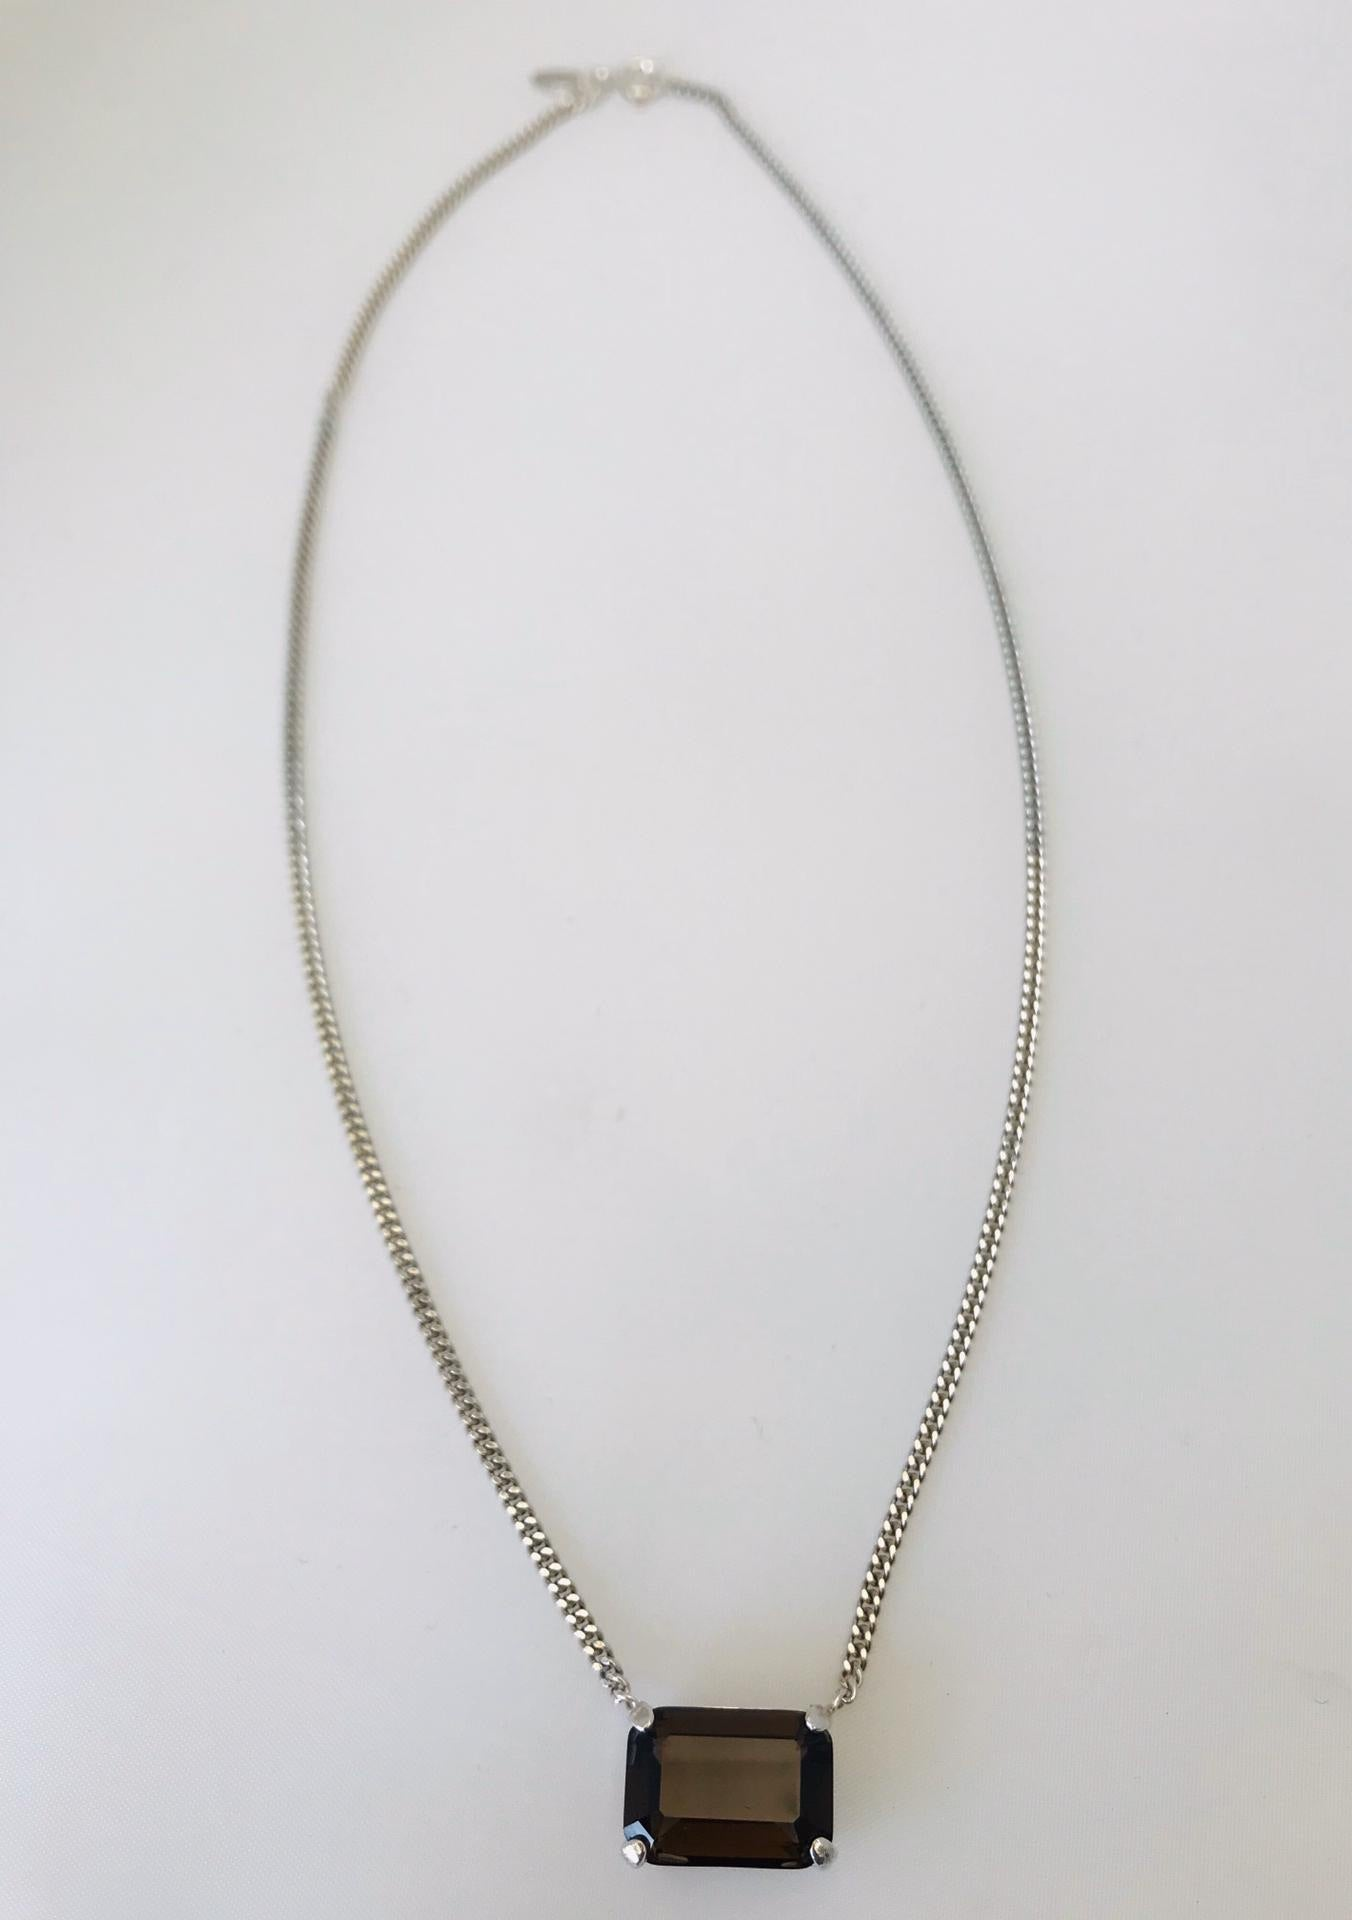 Wouters & Hendrix - silver smoky quartz necklace